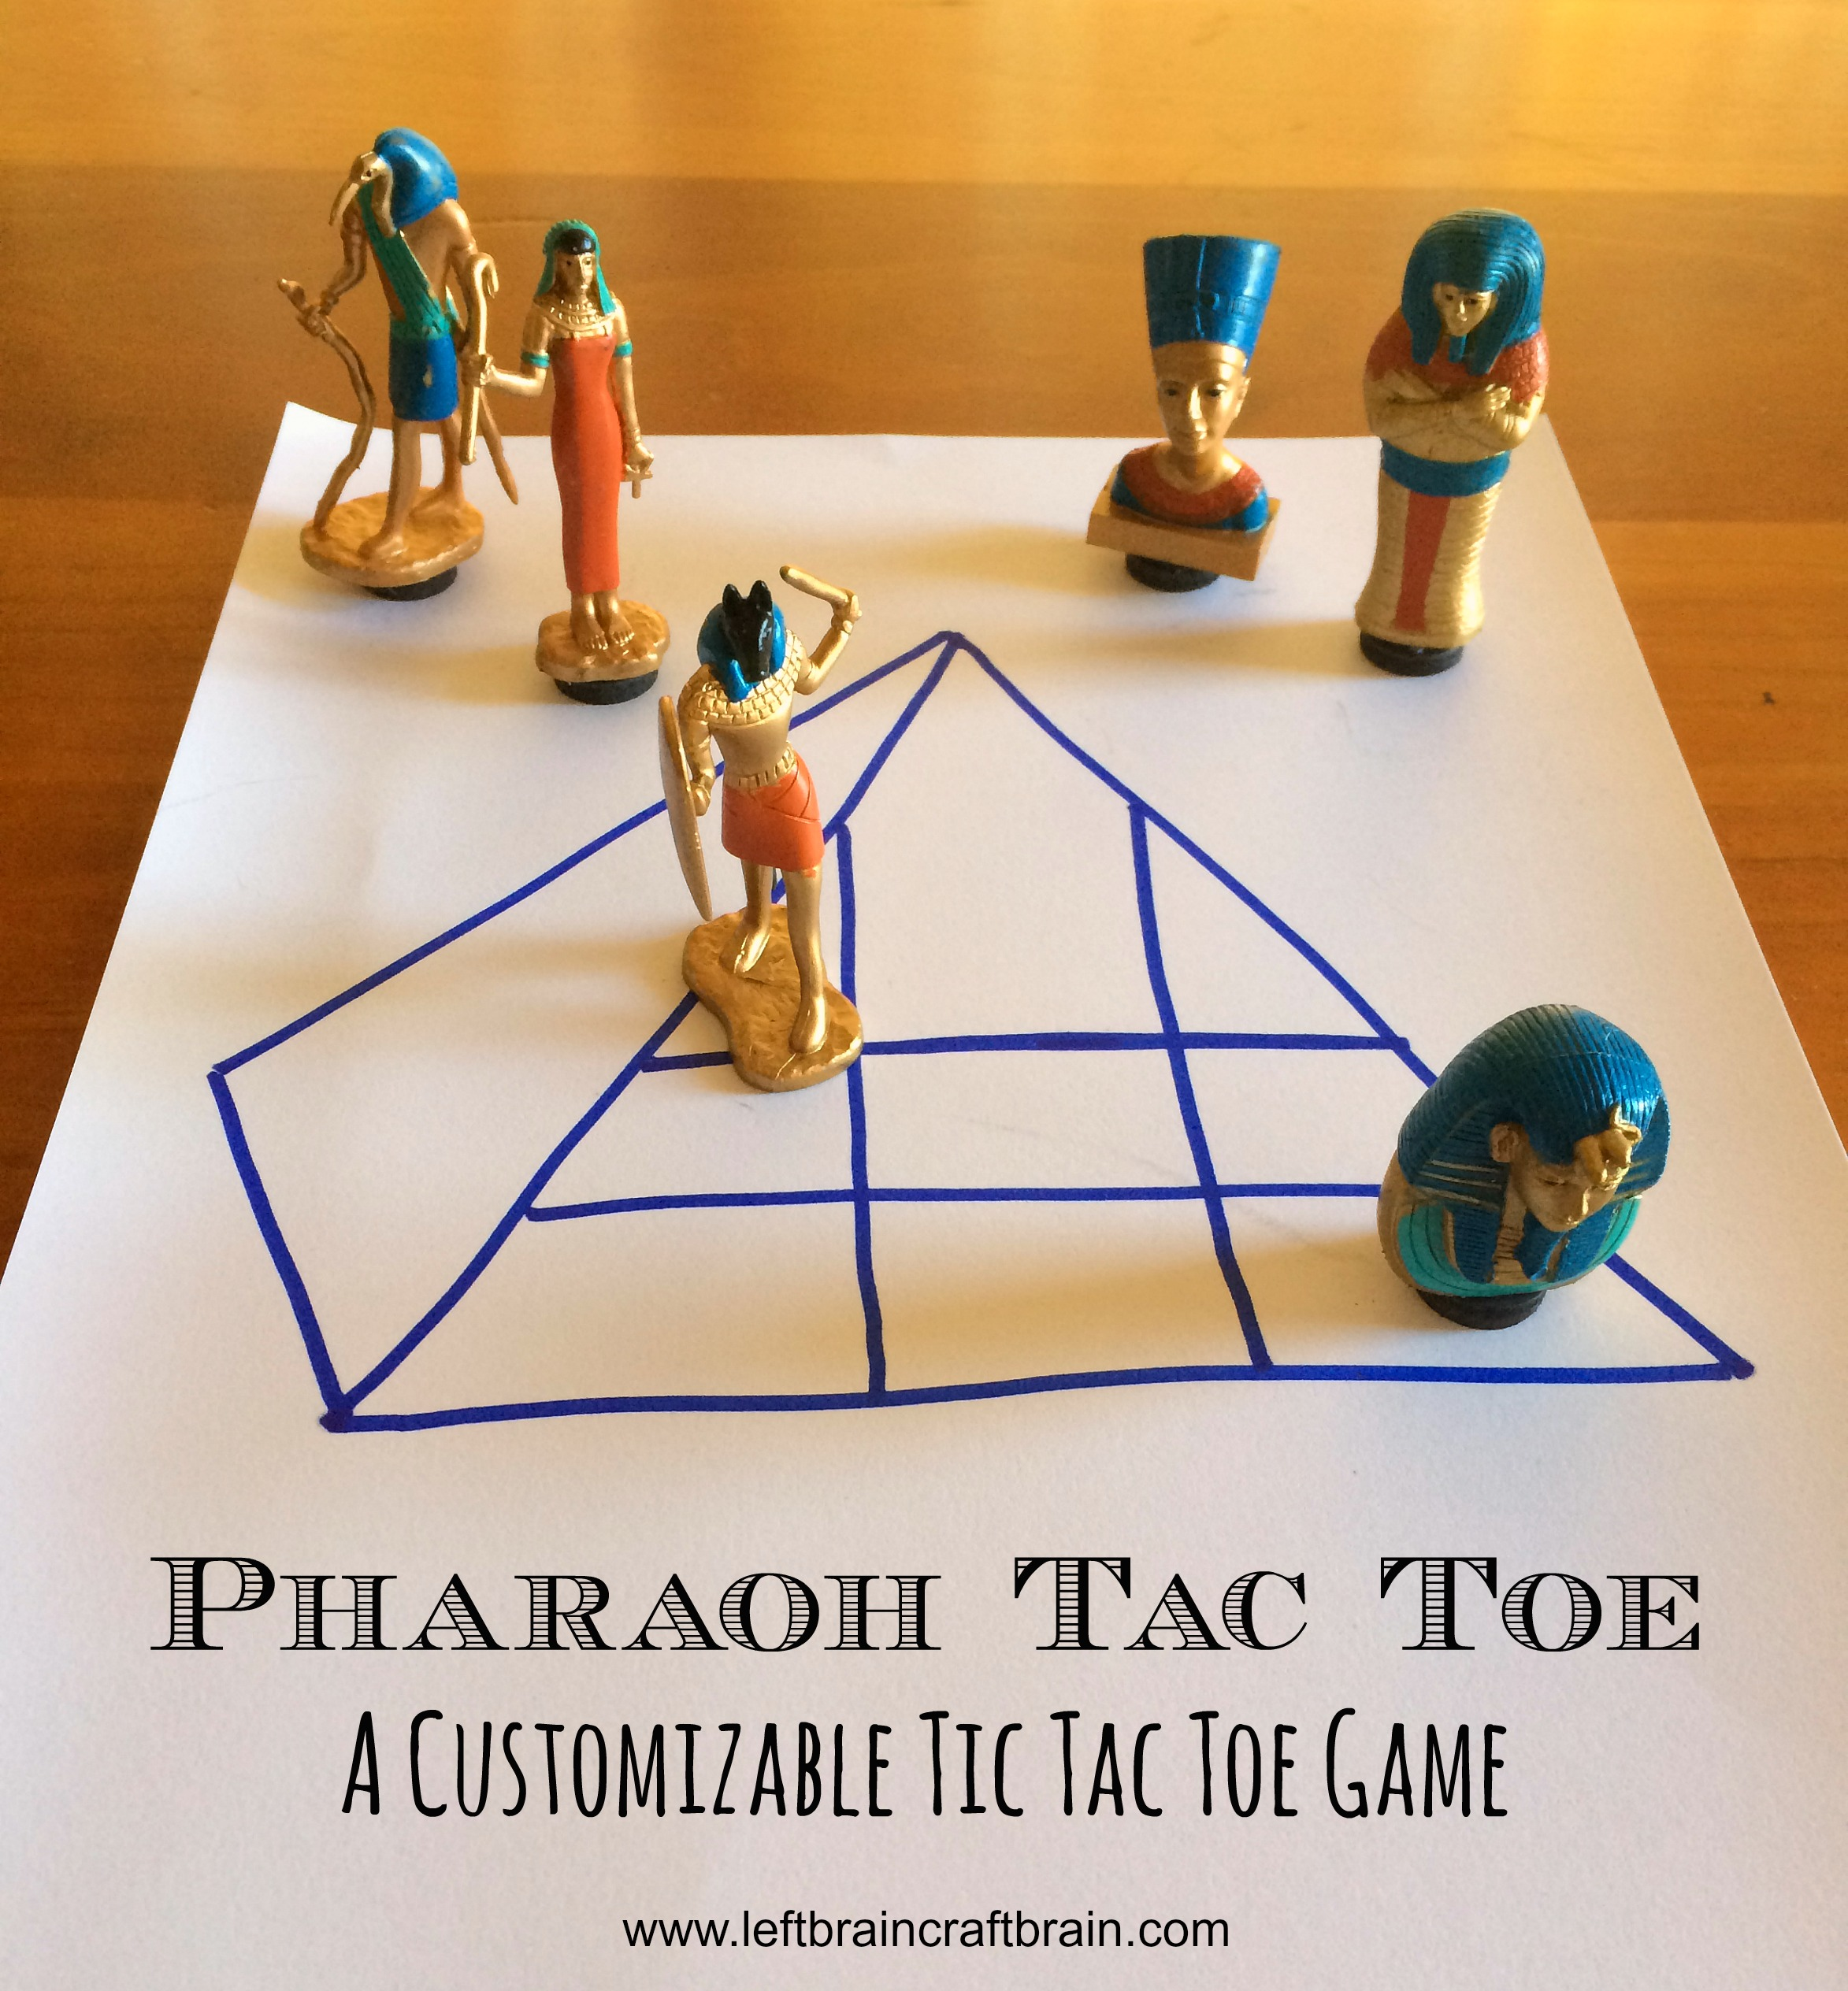 customizable tic tac toe pharaoh tac toe title